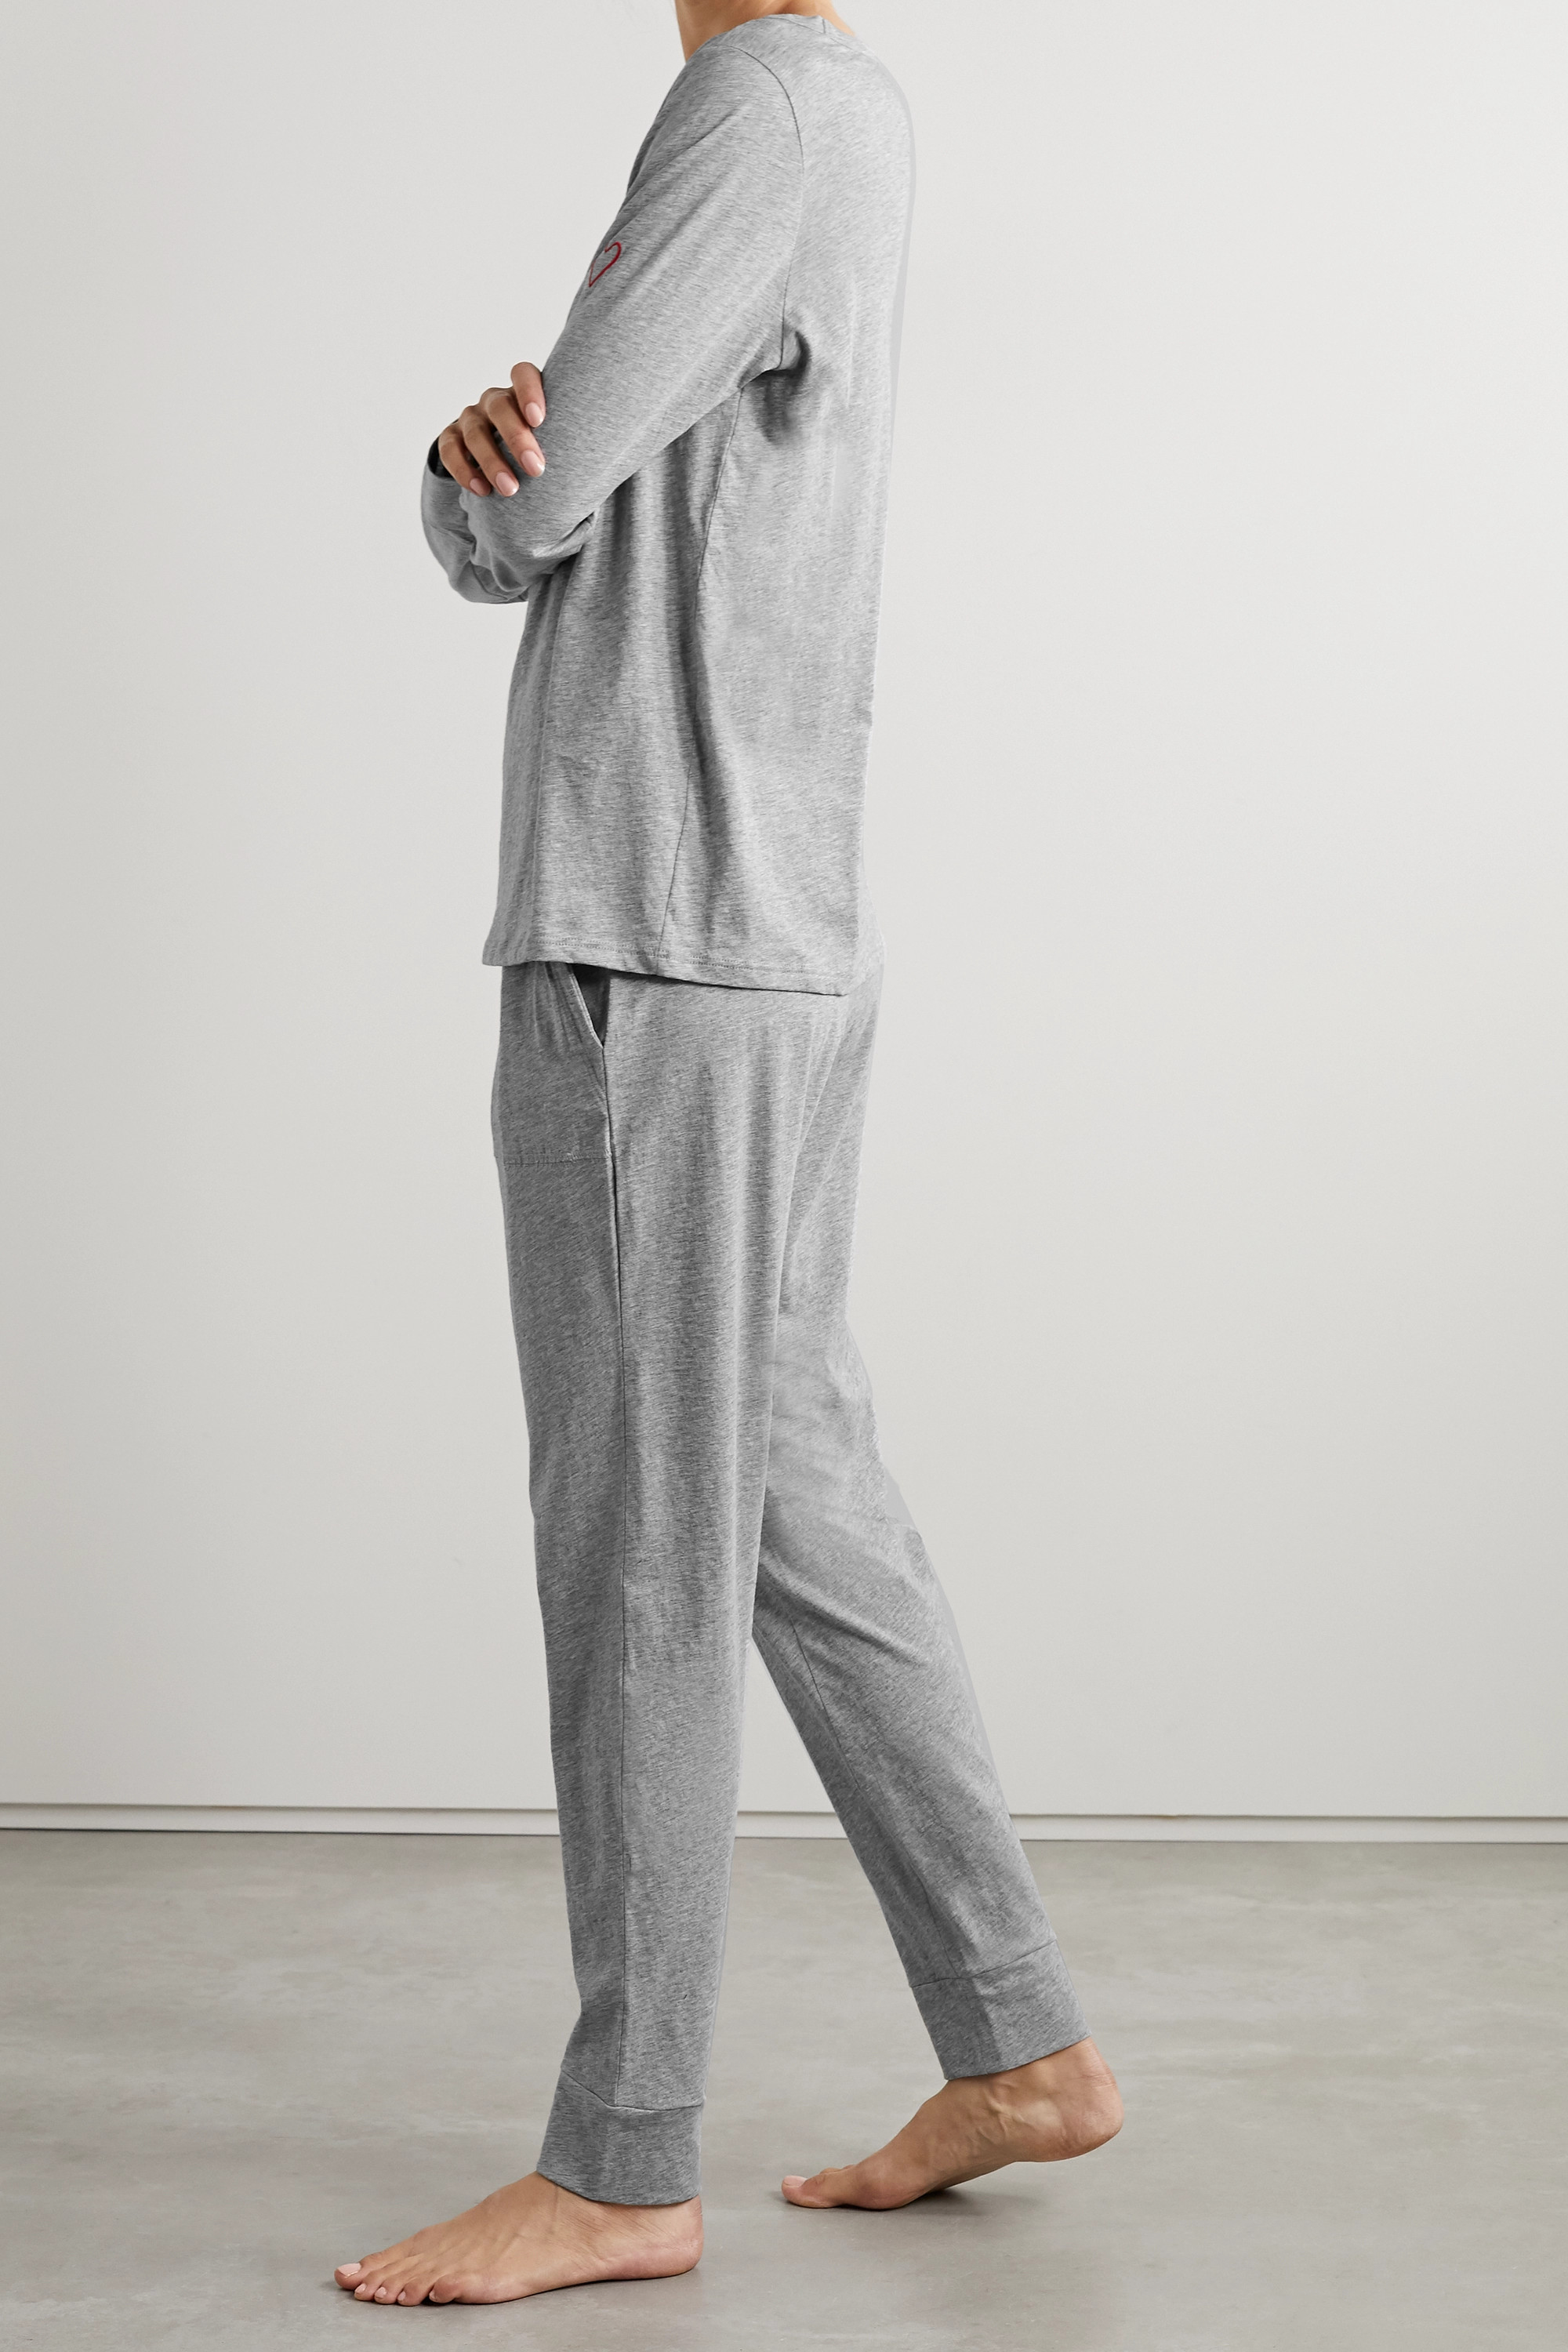 SKIN + NET SUSTAIN Cassandra embroidered organic cotton-jersey pajama set